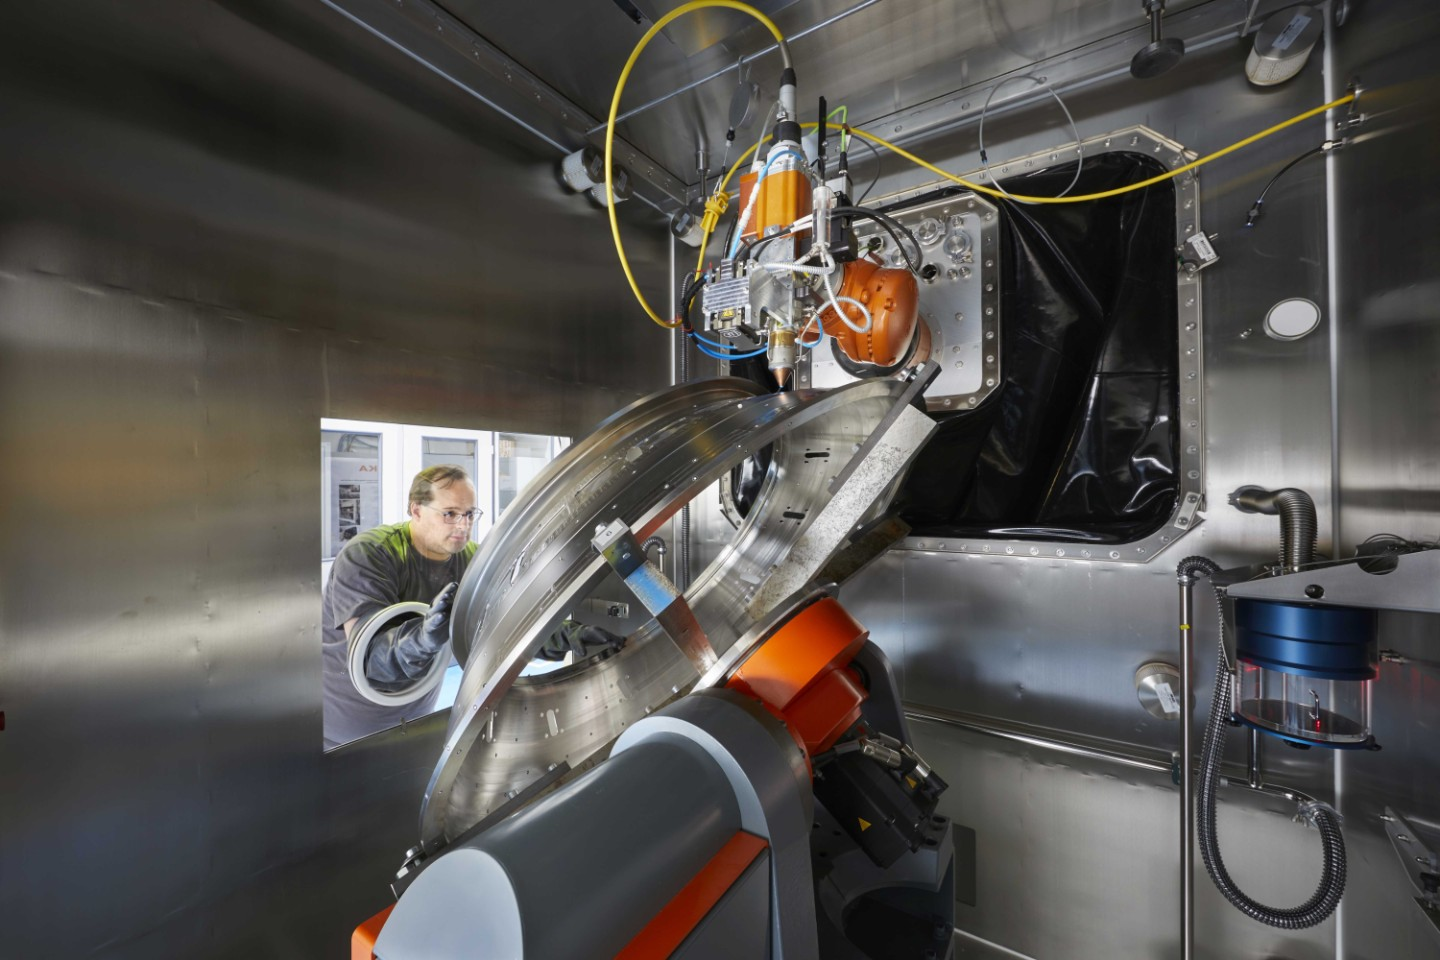 Adjusting the component in the protective gas cell of the ProLMD-System at project partner KUKA in Würselen/Germany.